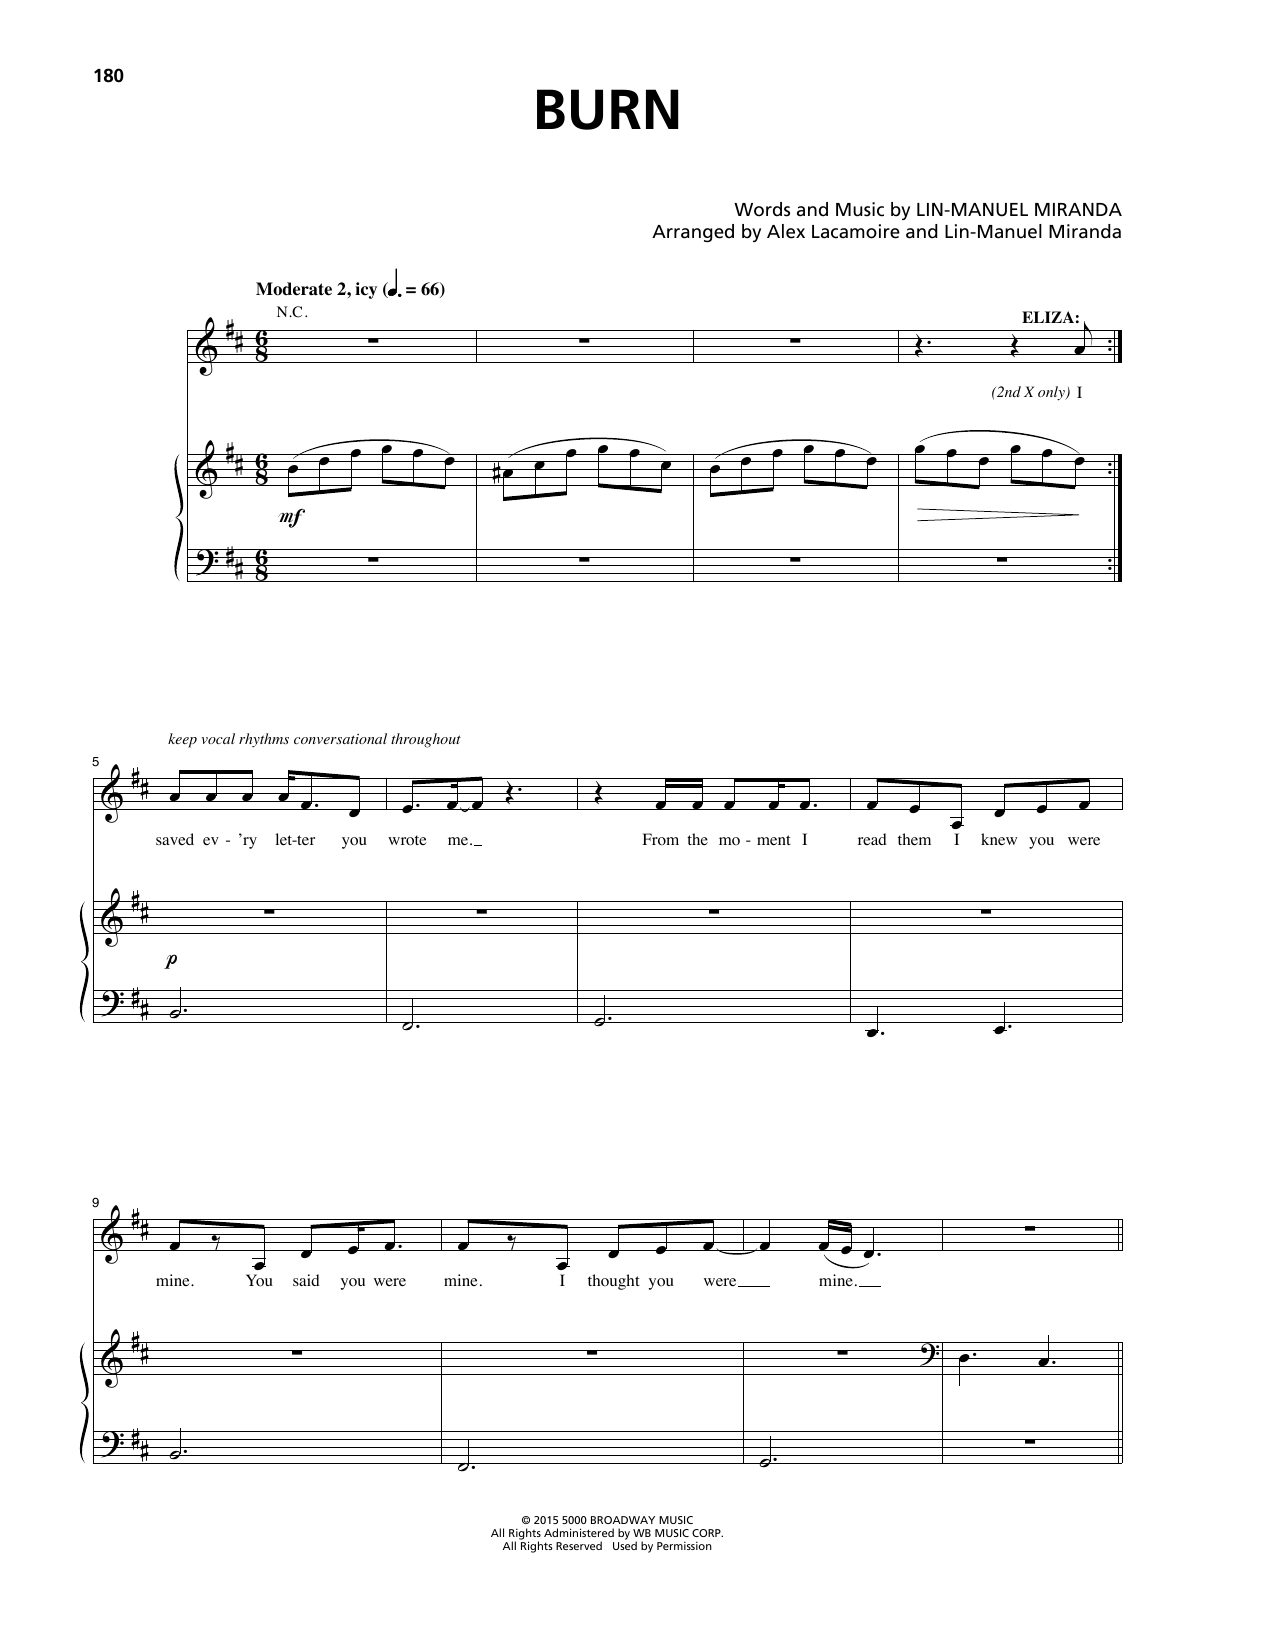 photograph regarding Hamilton Lyrics Printable named Lin-Manuel Miranda Burn up (in opposition to Hamilton) Sheet Tunes Notes, Chords  Obtain Printable Guitar Chords/Lyrics - SKU: 185639